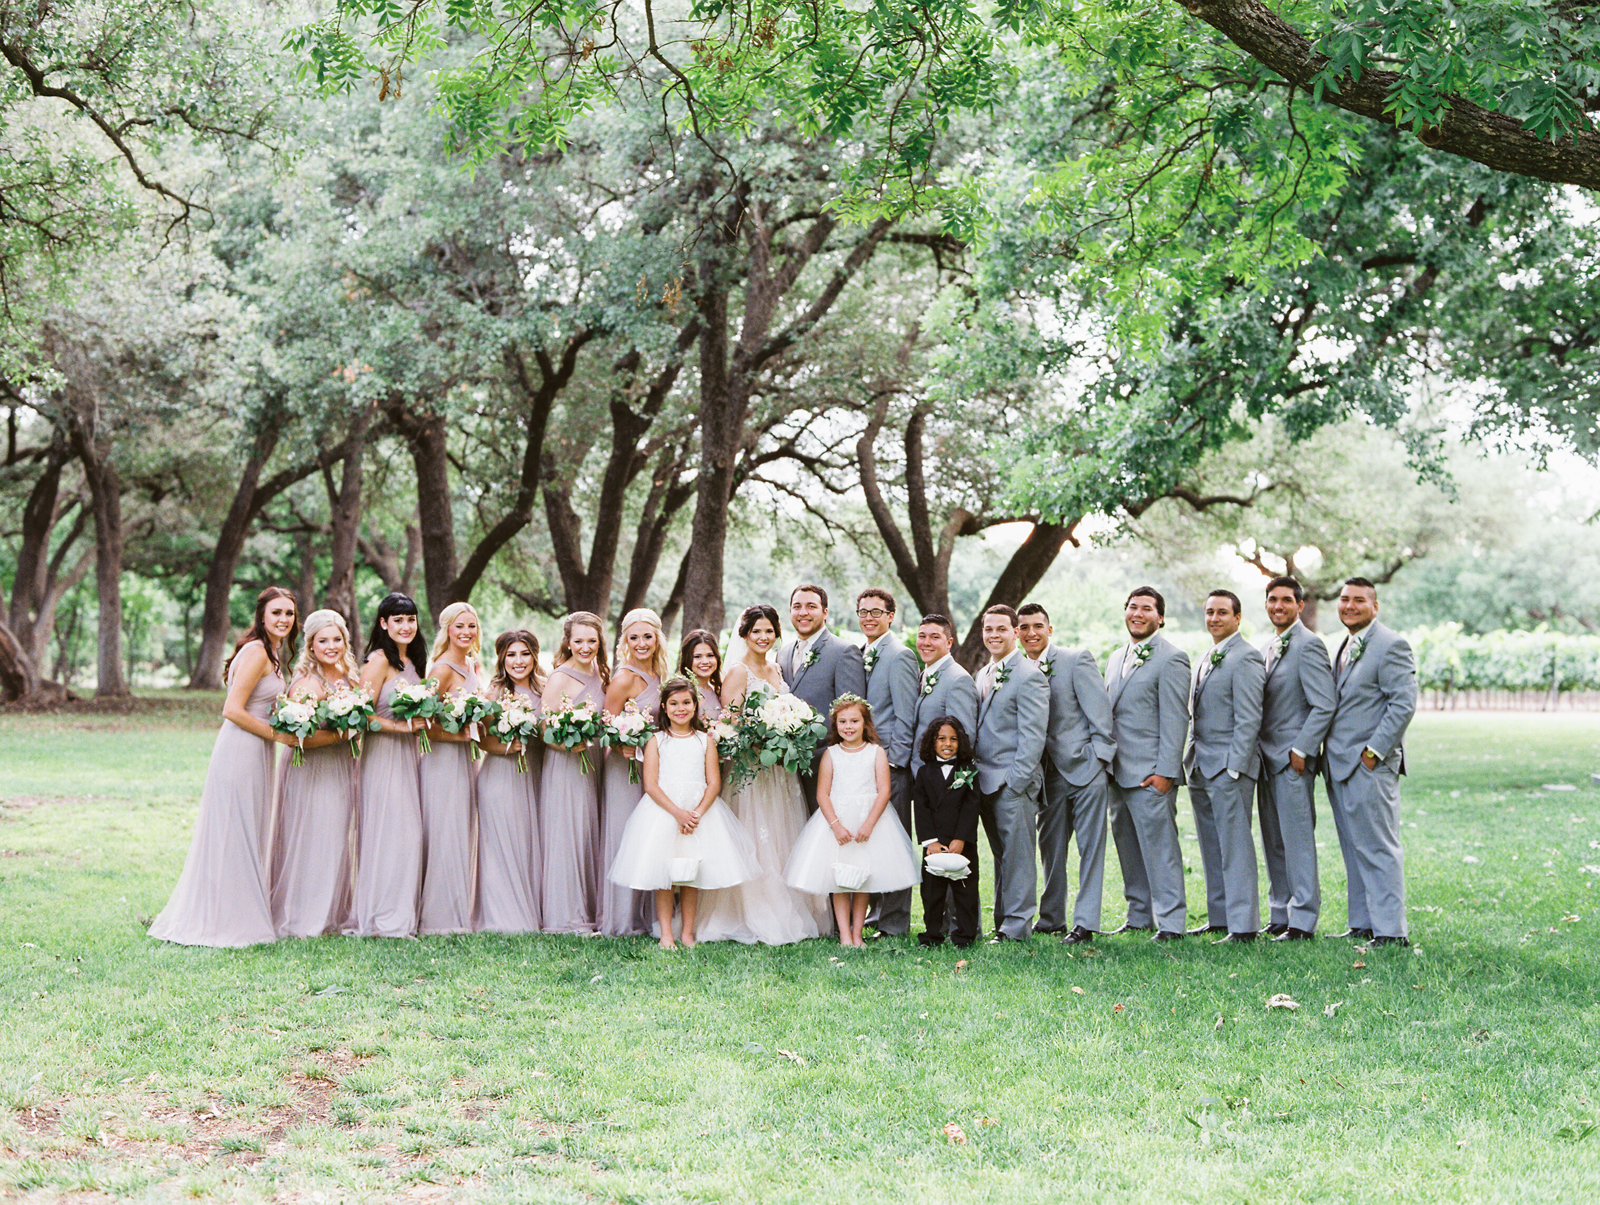 Elegant Spring Vineyard Wedding | Film Wedding Photographer | Austin Wedding Photographer | Neutral and Gray Bridal Party | Britni Dean Photography // britnidean.com